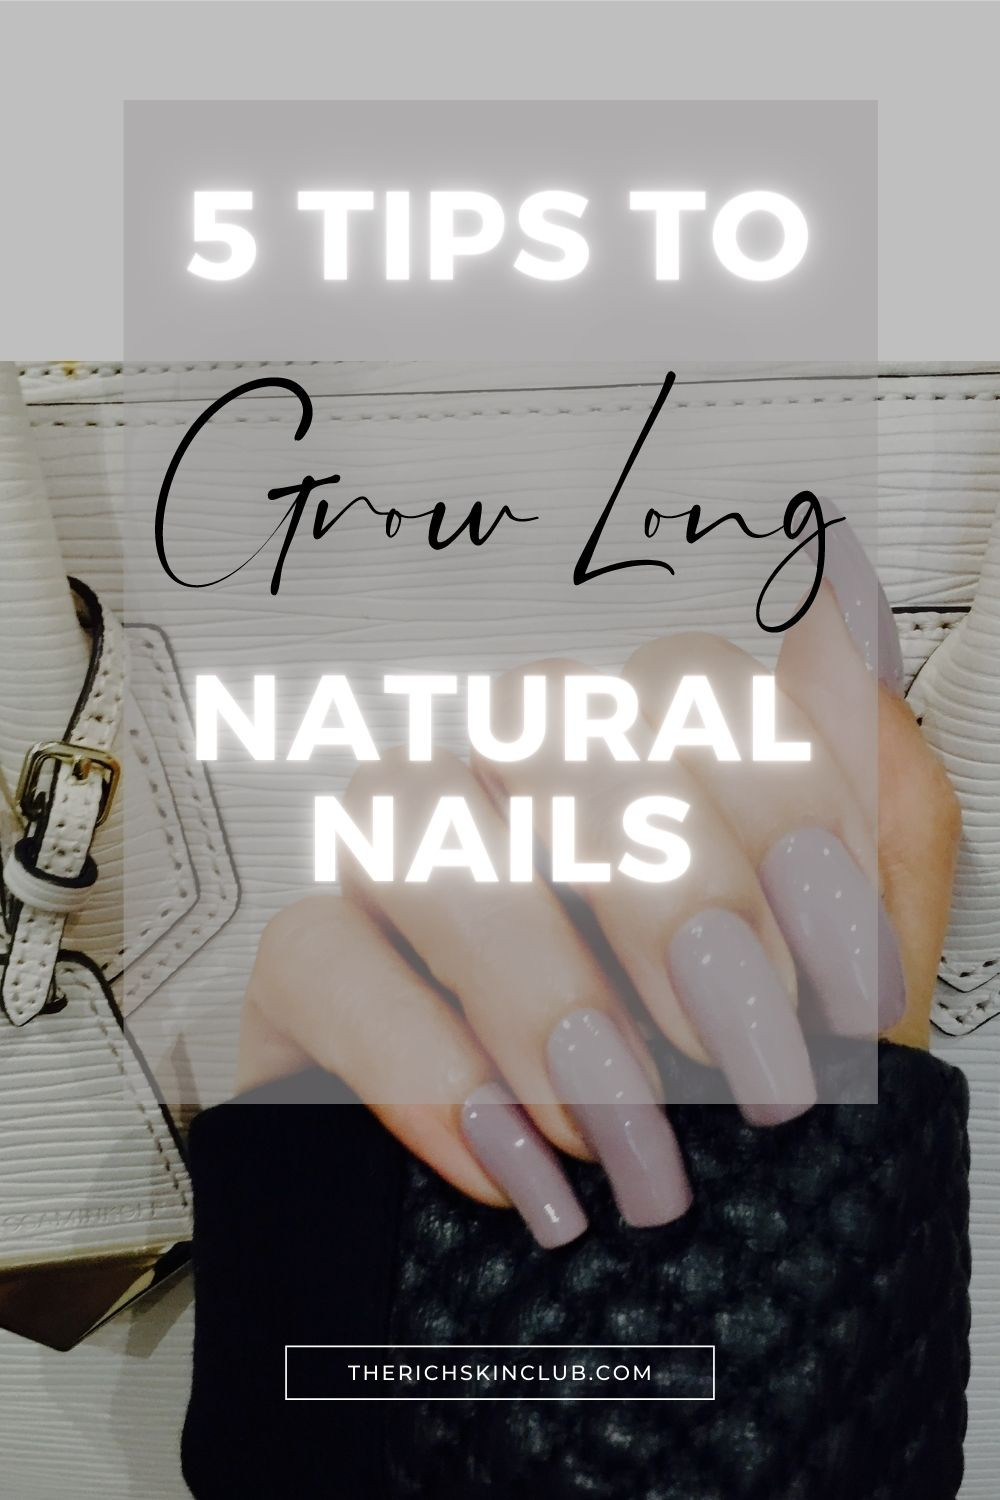 A Magic Formula To Grow Long, Strong, Healthy Nails. A step by step guide to natural nail care for fast nail growth. Click the pin for 5 steps to strong, healthy nails that won't split or break. With regular care your nails can grow long and beautiful! #strengthennailsnaturally #naturalnailgrowth #naturalnails #howtogrowyournails